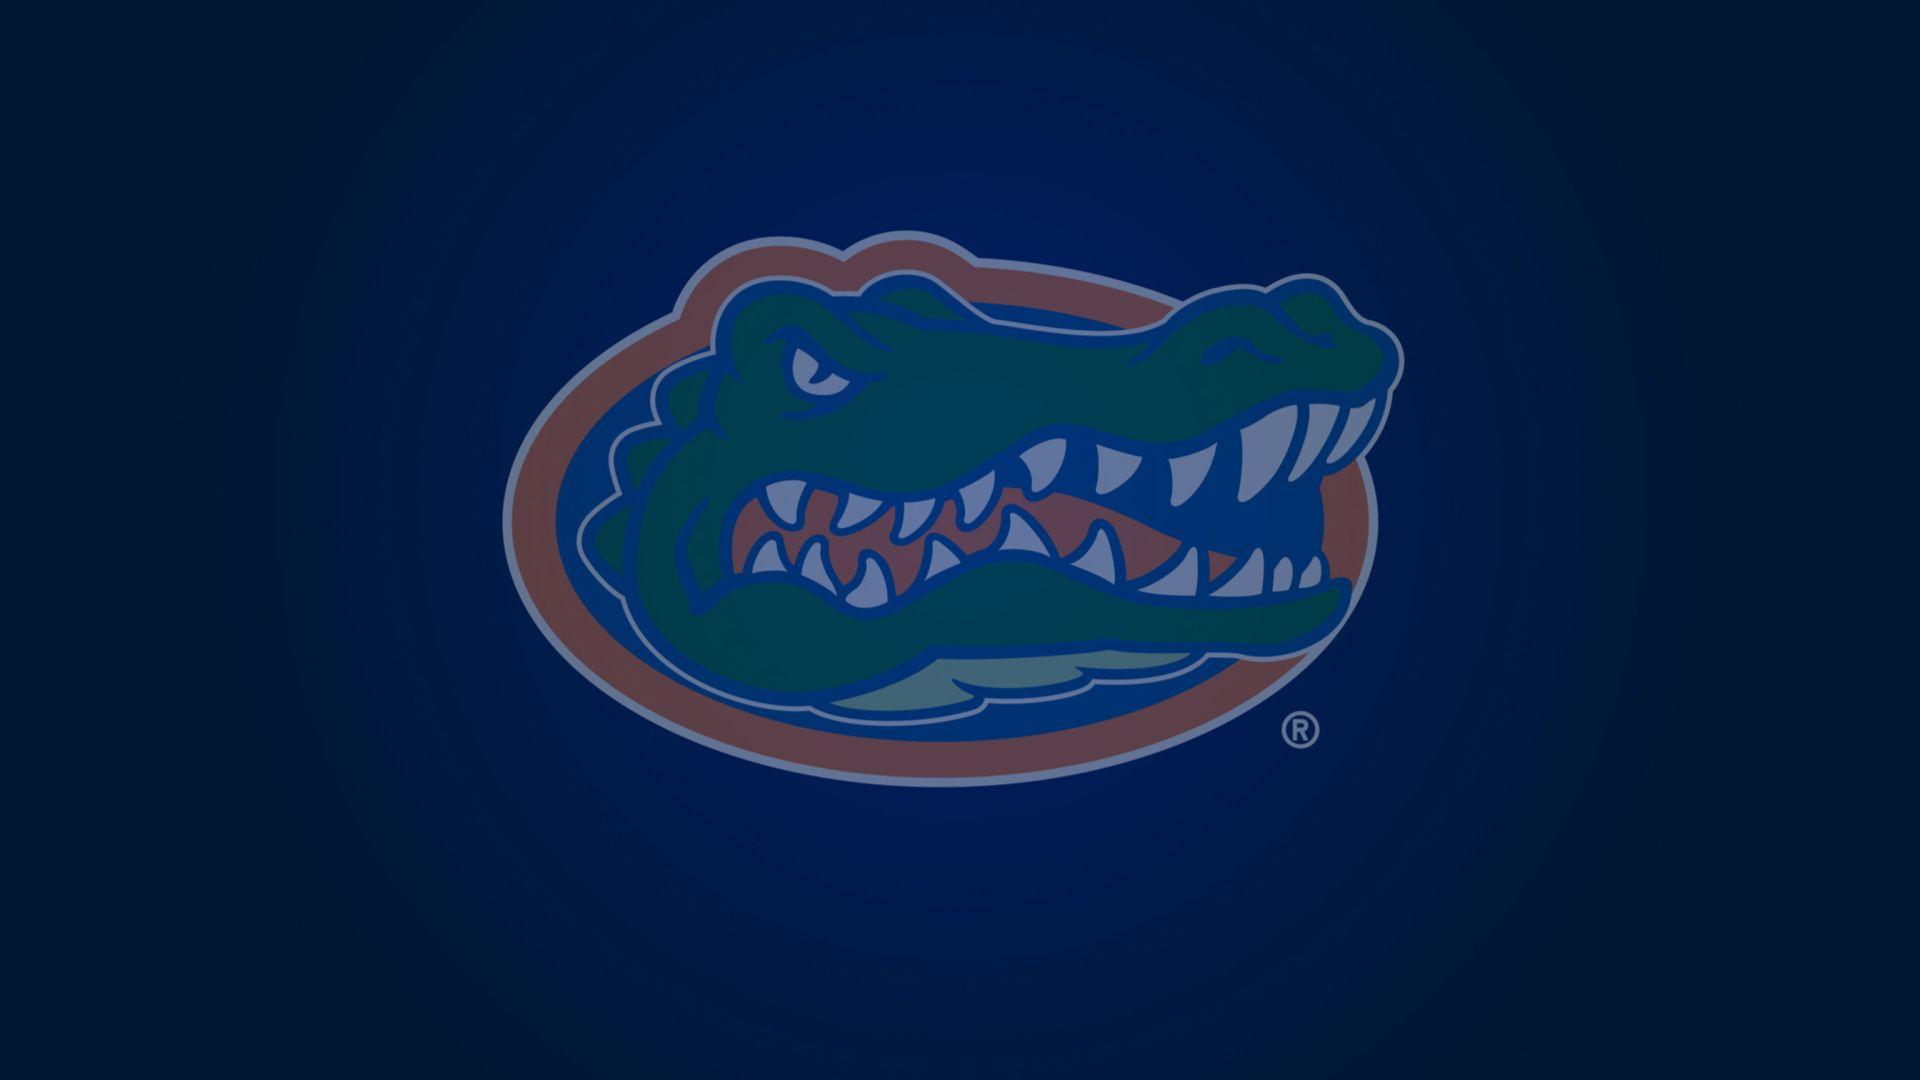 Florida Gators Wallpaper for Desktop 1920x1080 Full HD